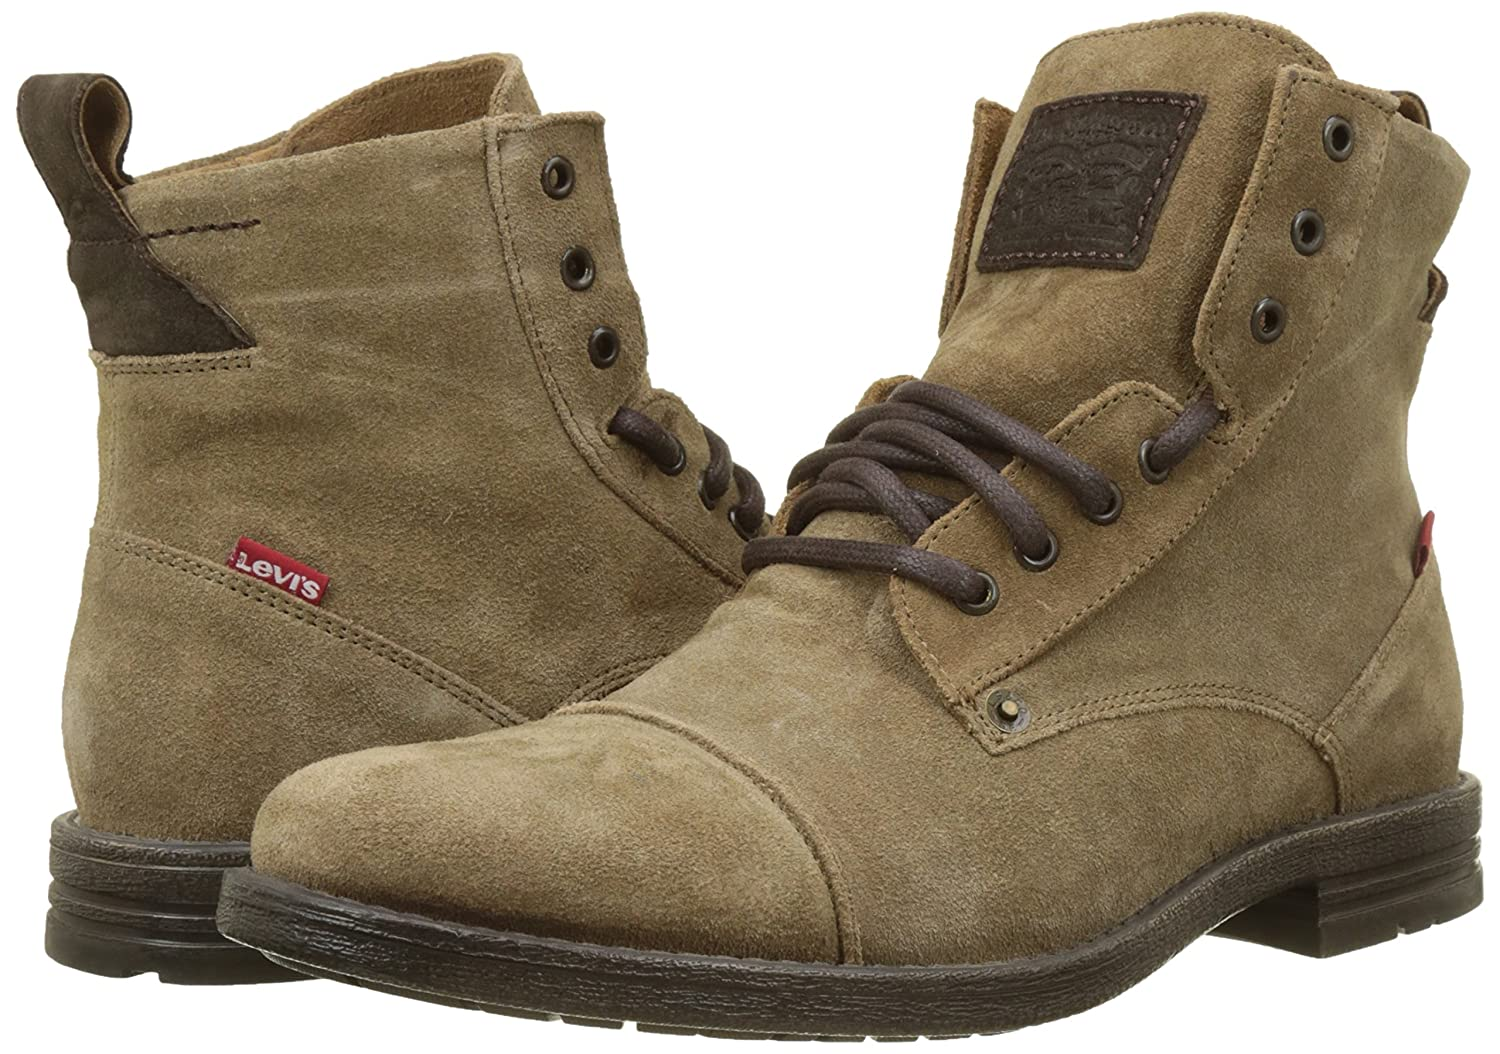 Amazon.com | Levis Emerson Suede Boots 11 D(M) US Medium Brown | Ankle & Bootie